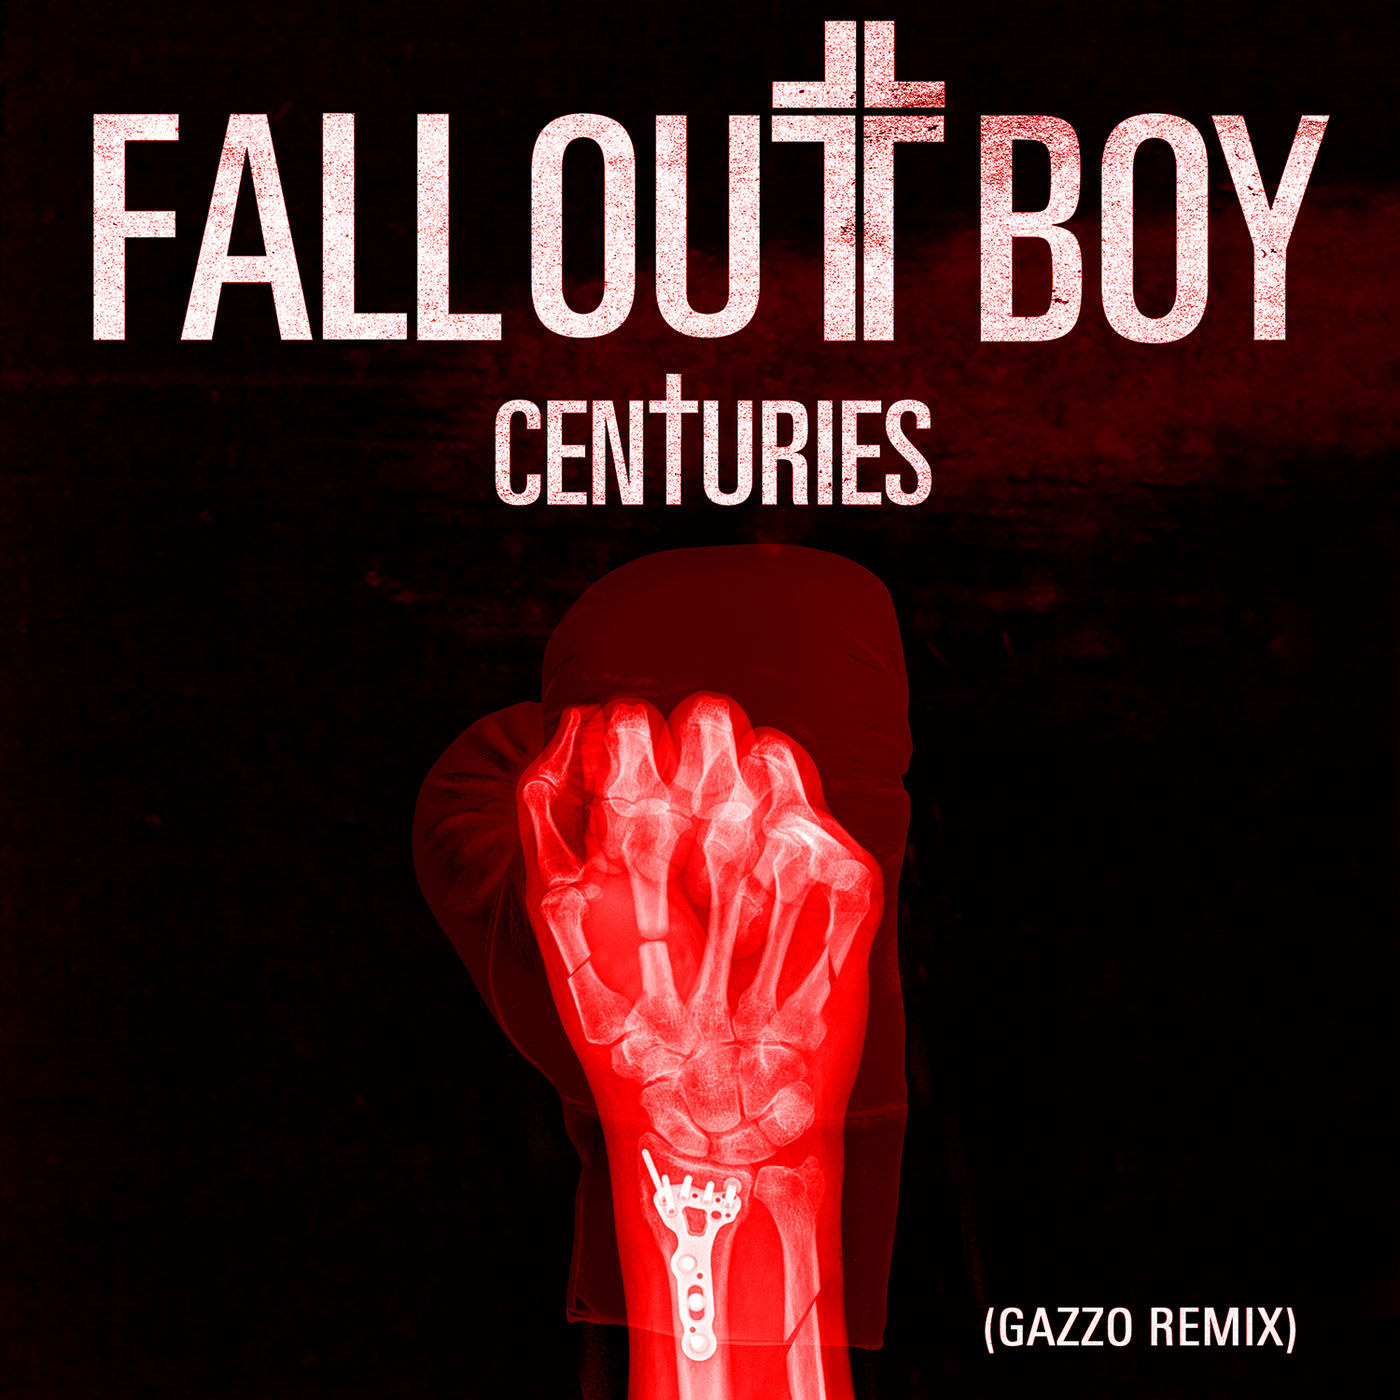 Fall Out Boy - Centuries (Gazzo Remix) - Single Cover